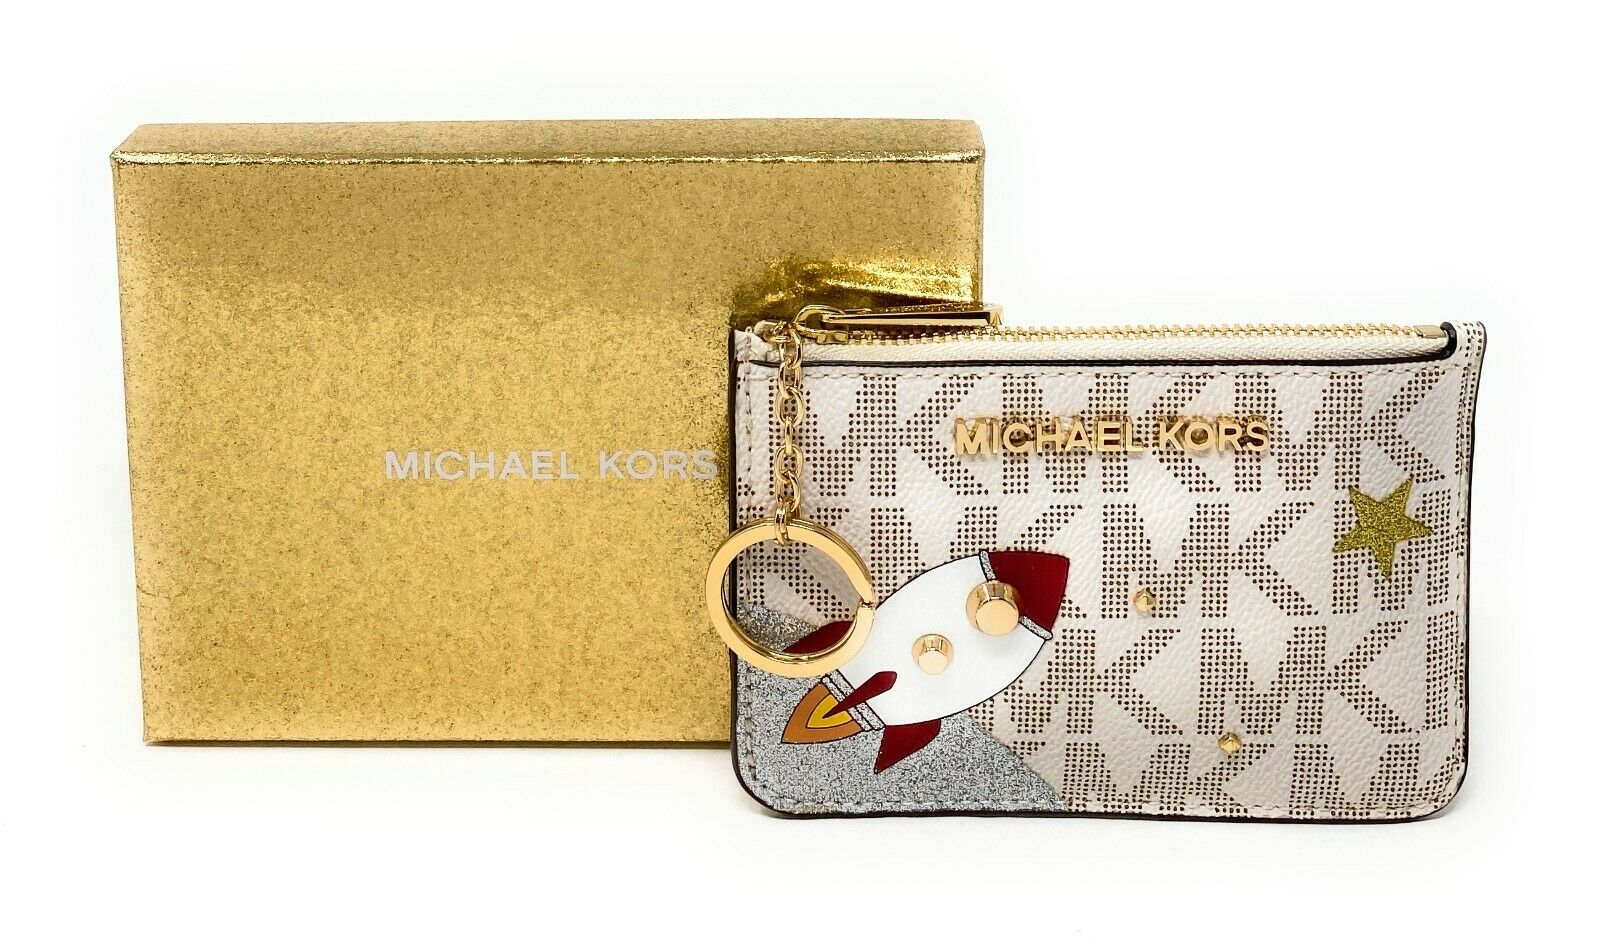 Michael Kors Women's Jet Set Item Small Top Zip ID Case Wallet Clothing, Shoes & Accessories